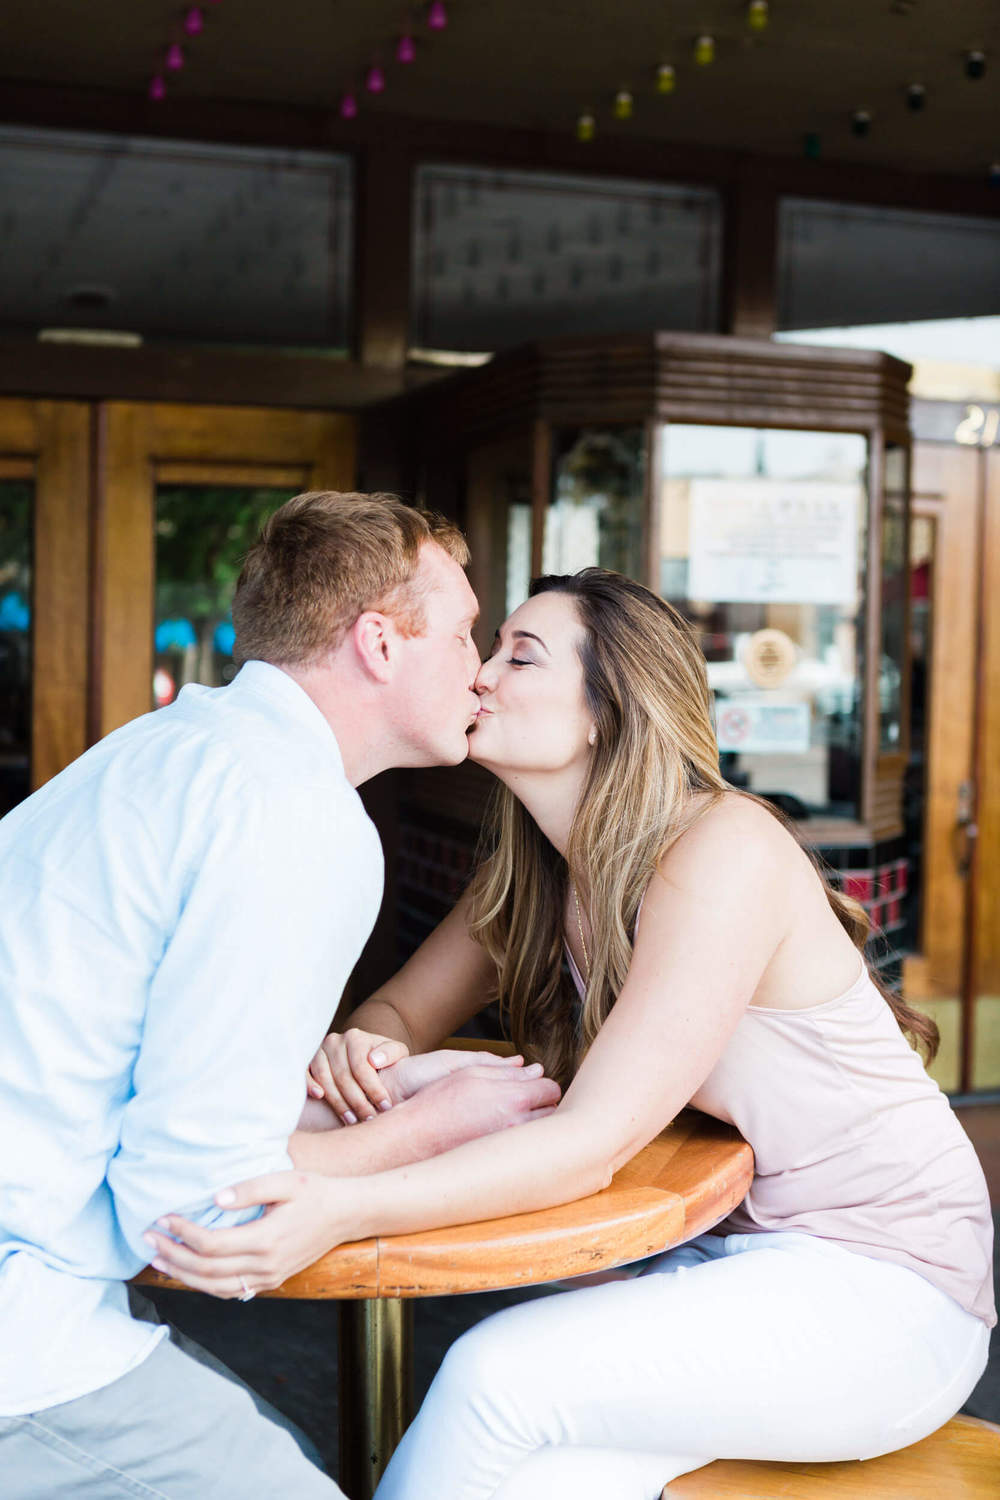 Laid back san francisco engagement session - best San Francisco wedding photographer - Claire Dobson